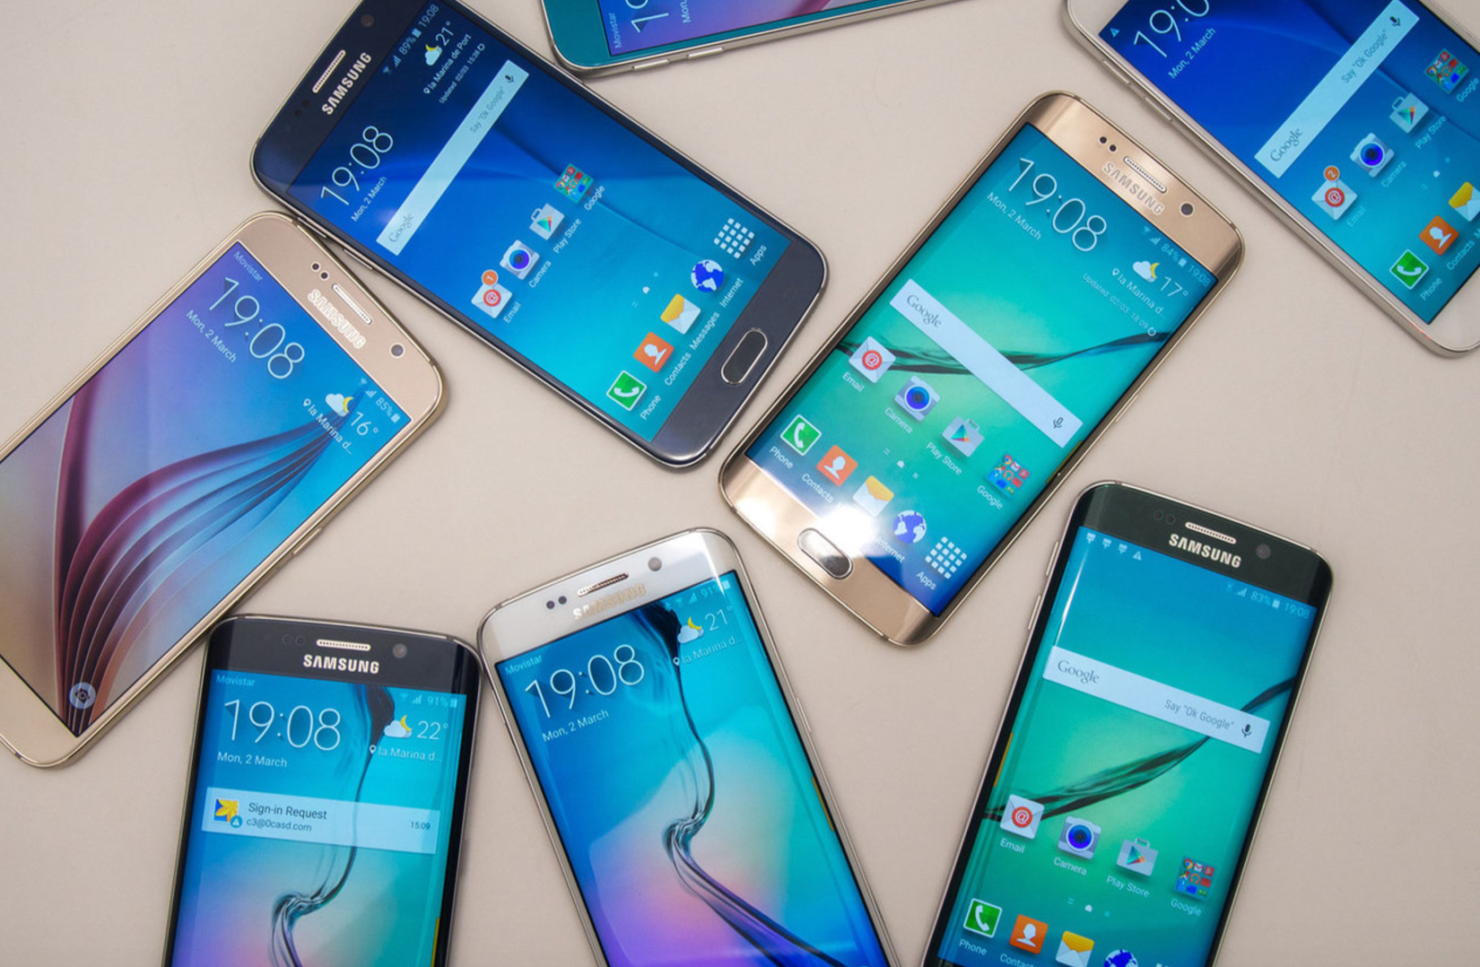 Galaxy S7 edge ROM update Galaxy S7 edge to Android 7.1.2 rom